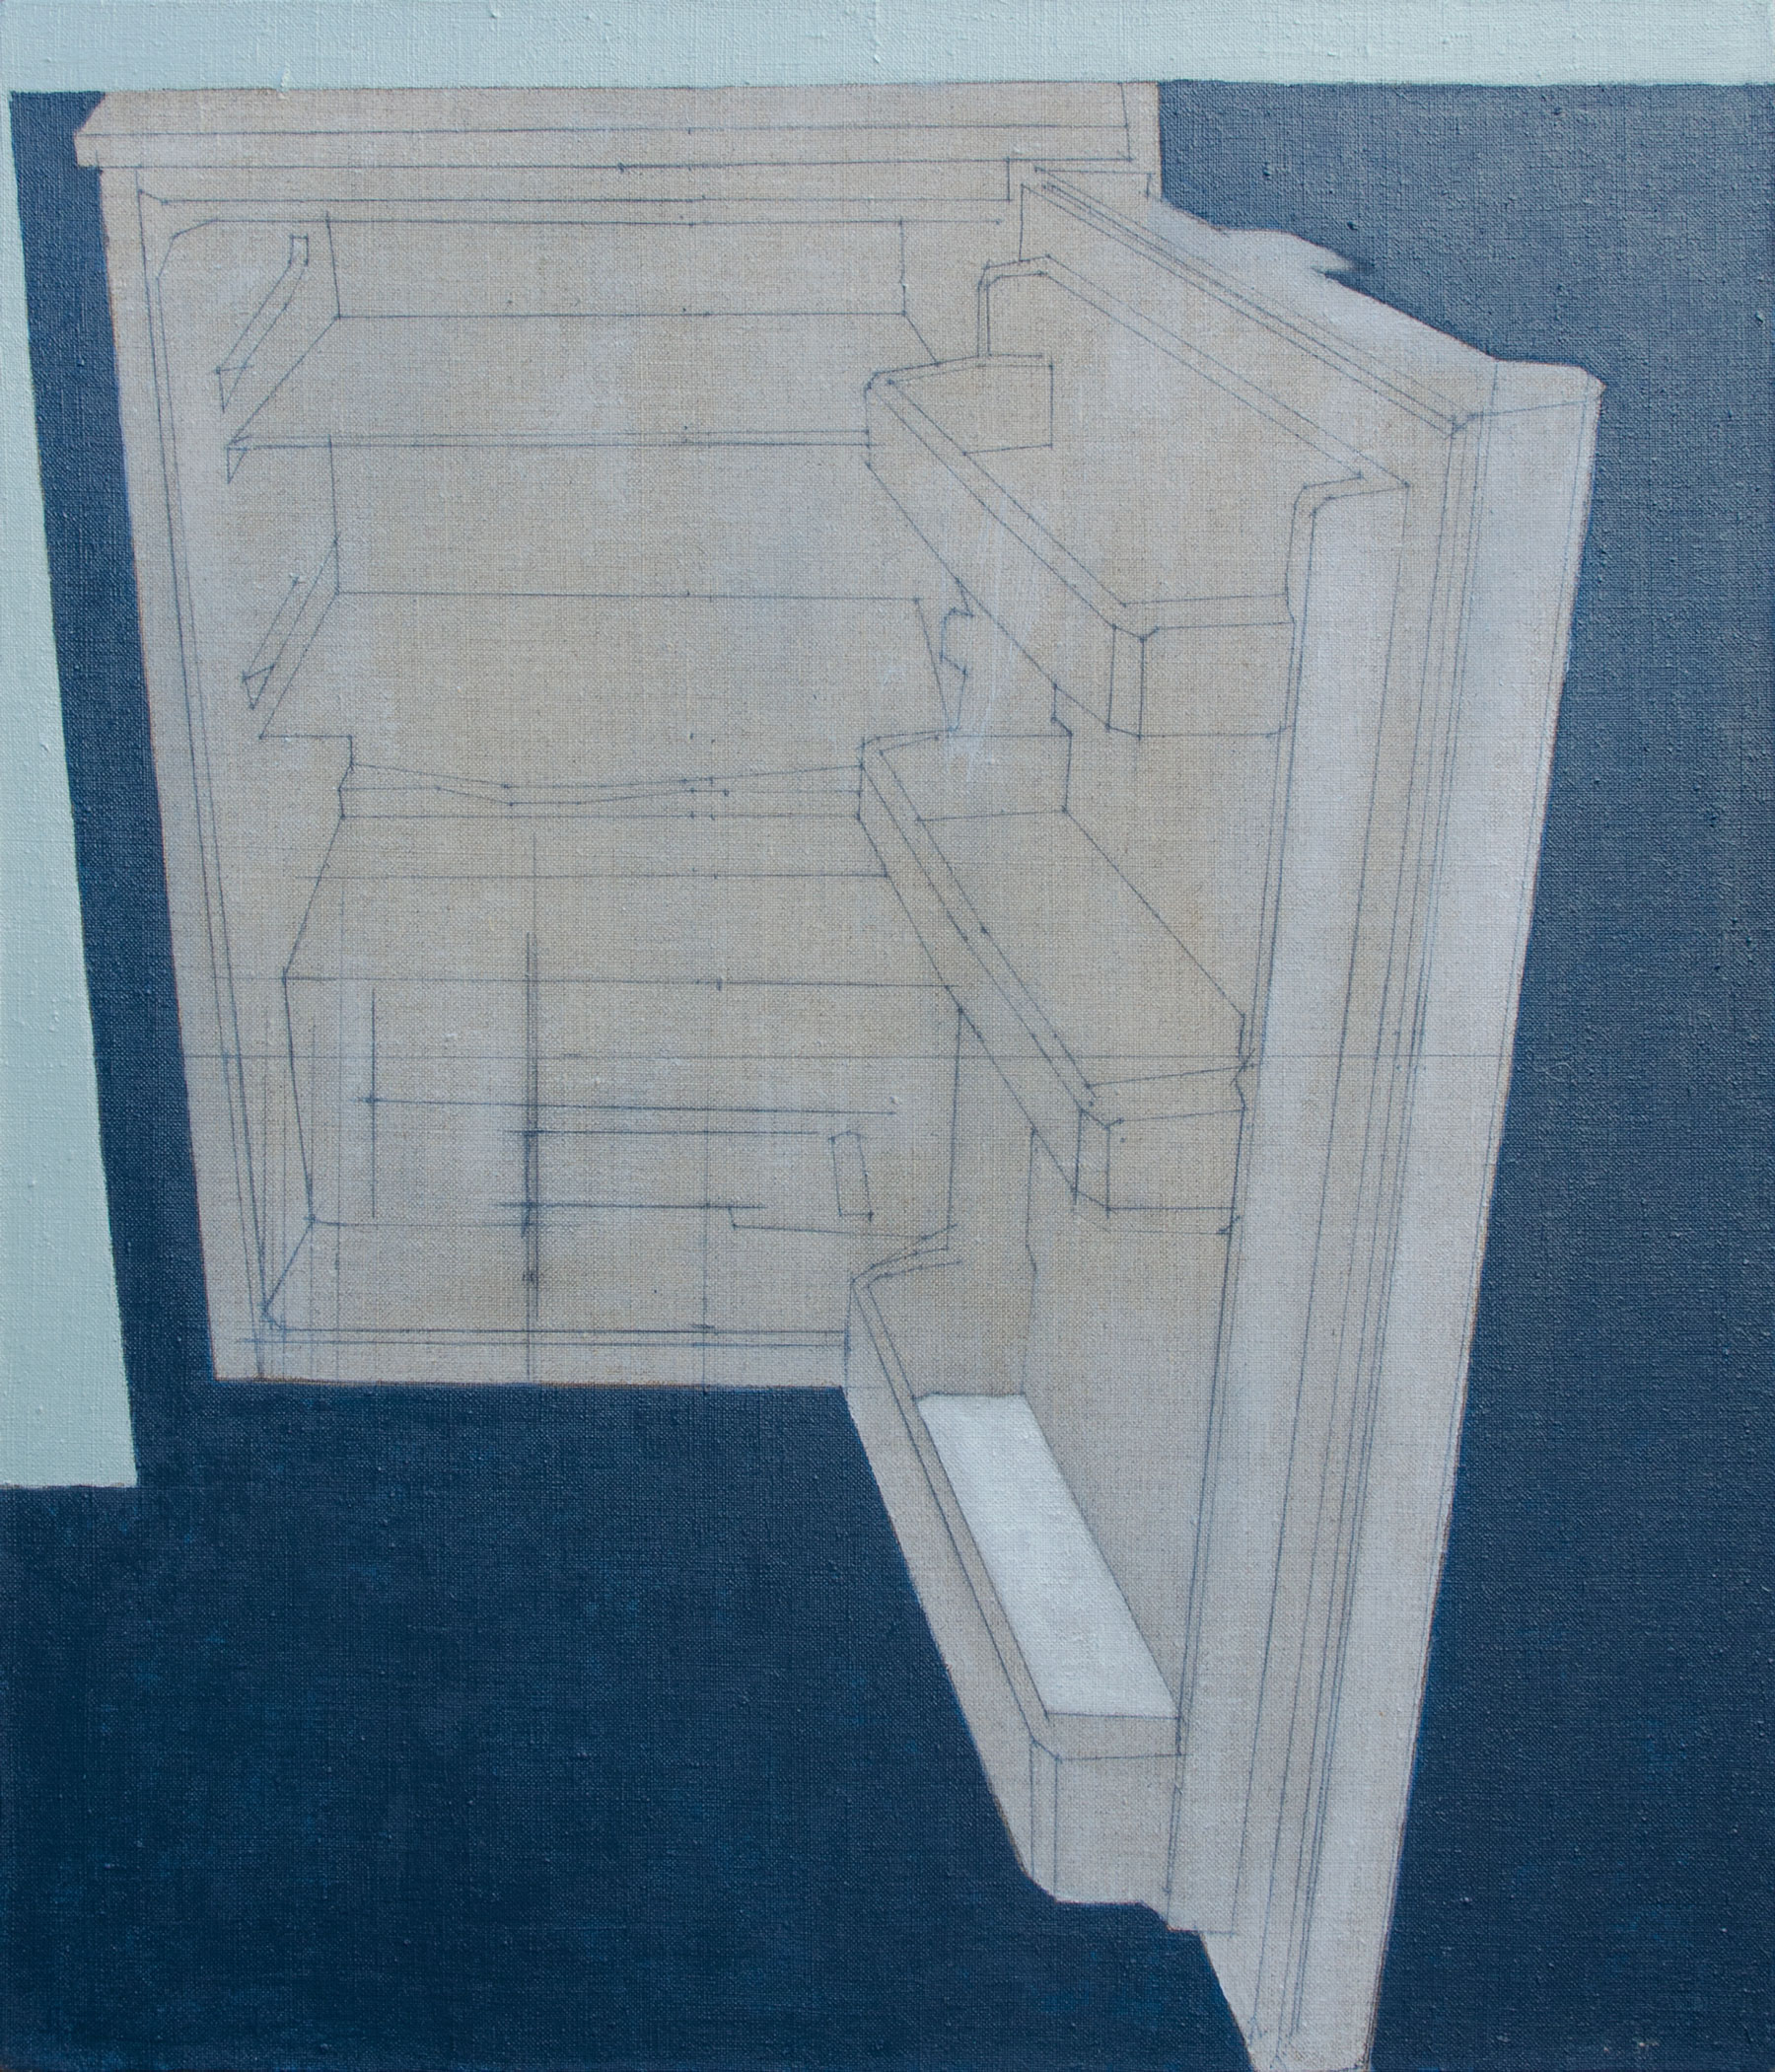 James Reynolds, The Fridge Incident, Oil and Graphite on Linen, 46 x 55cm,  http://www.jhtreynolds.com